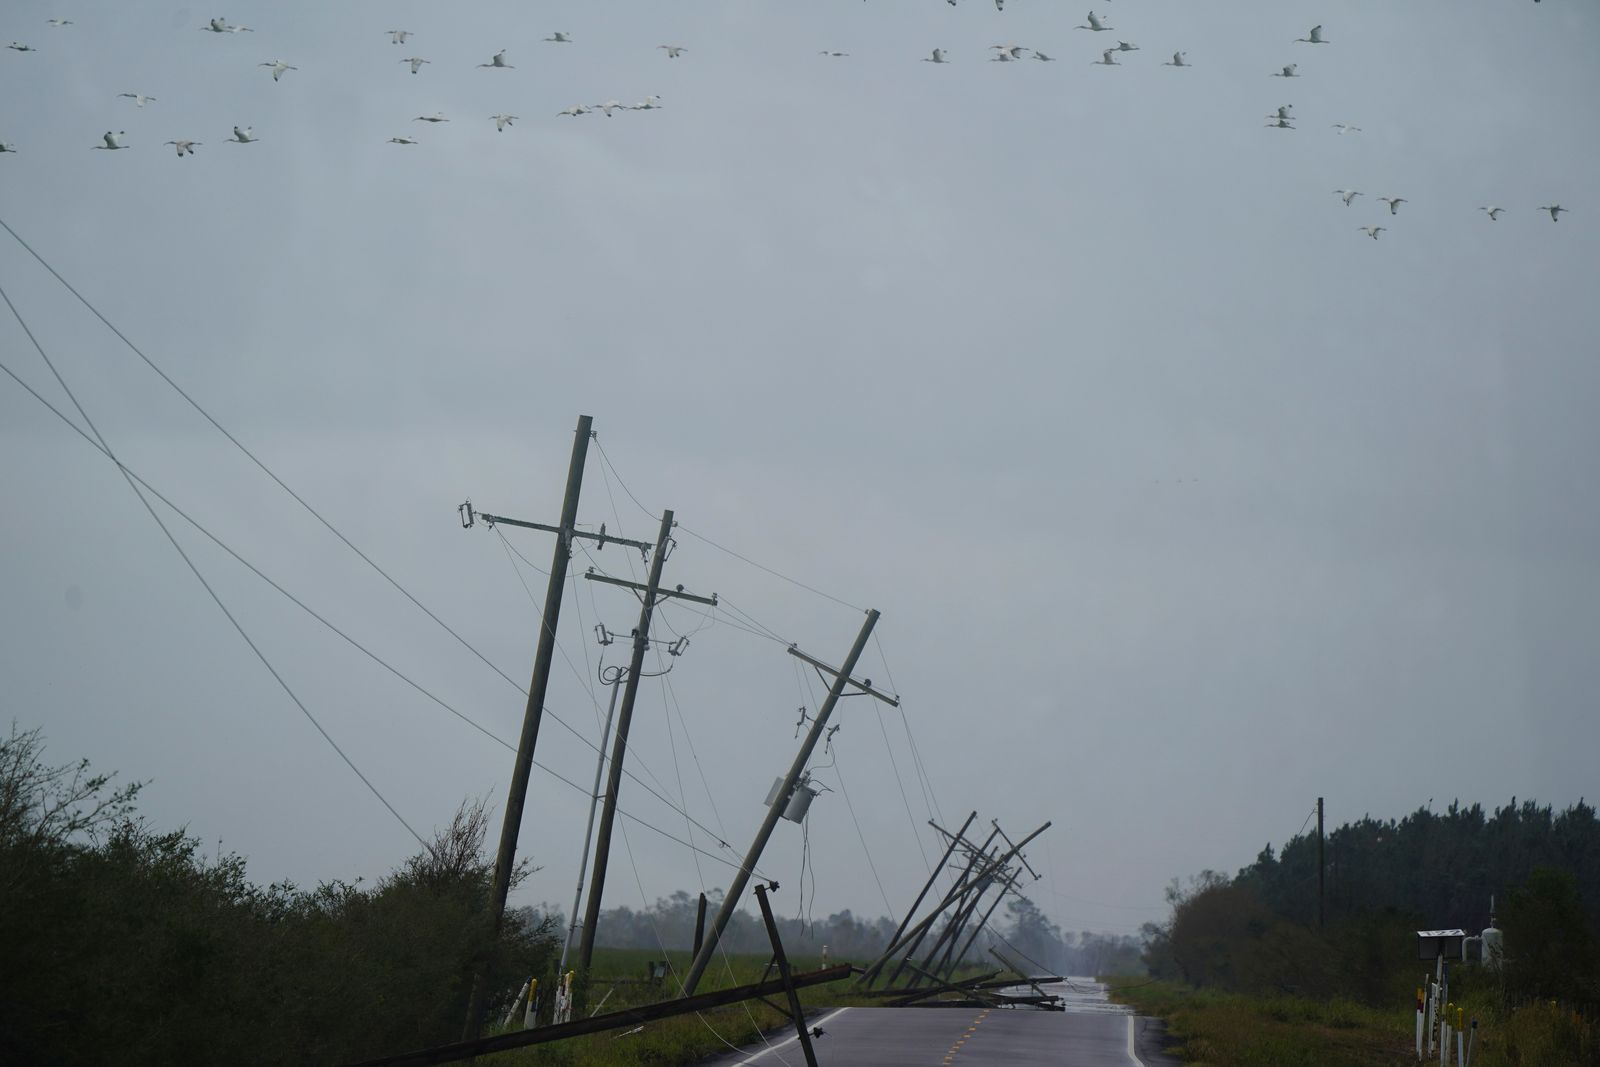 Downed power lines are seen after Hurricane Laura passed through the area in Creole